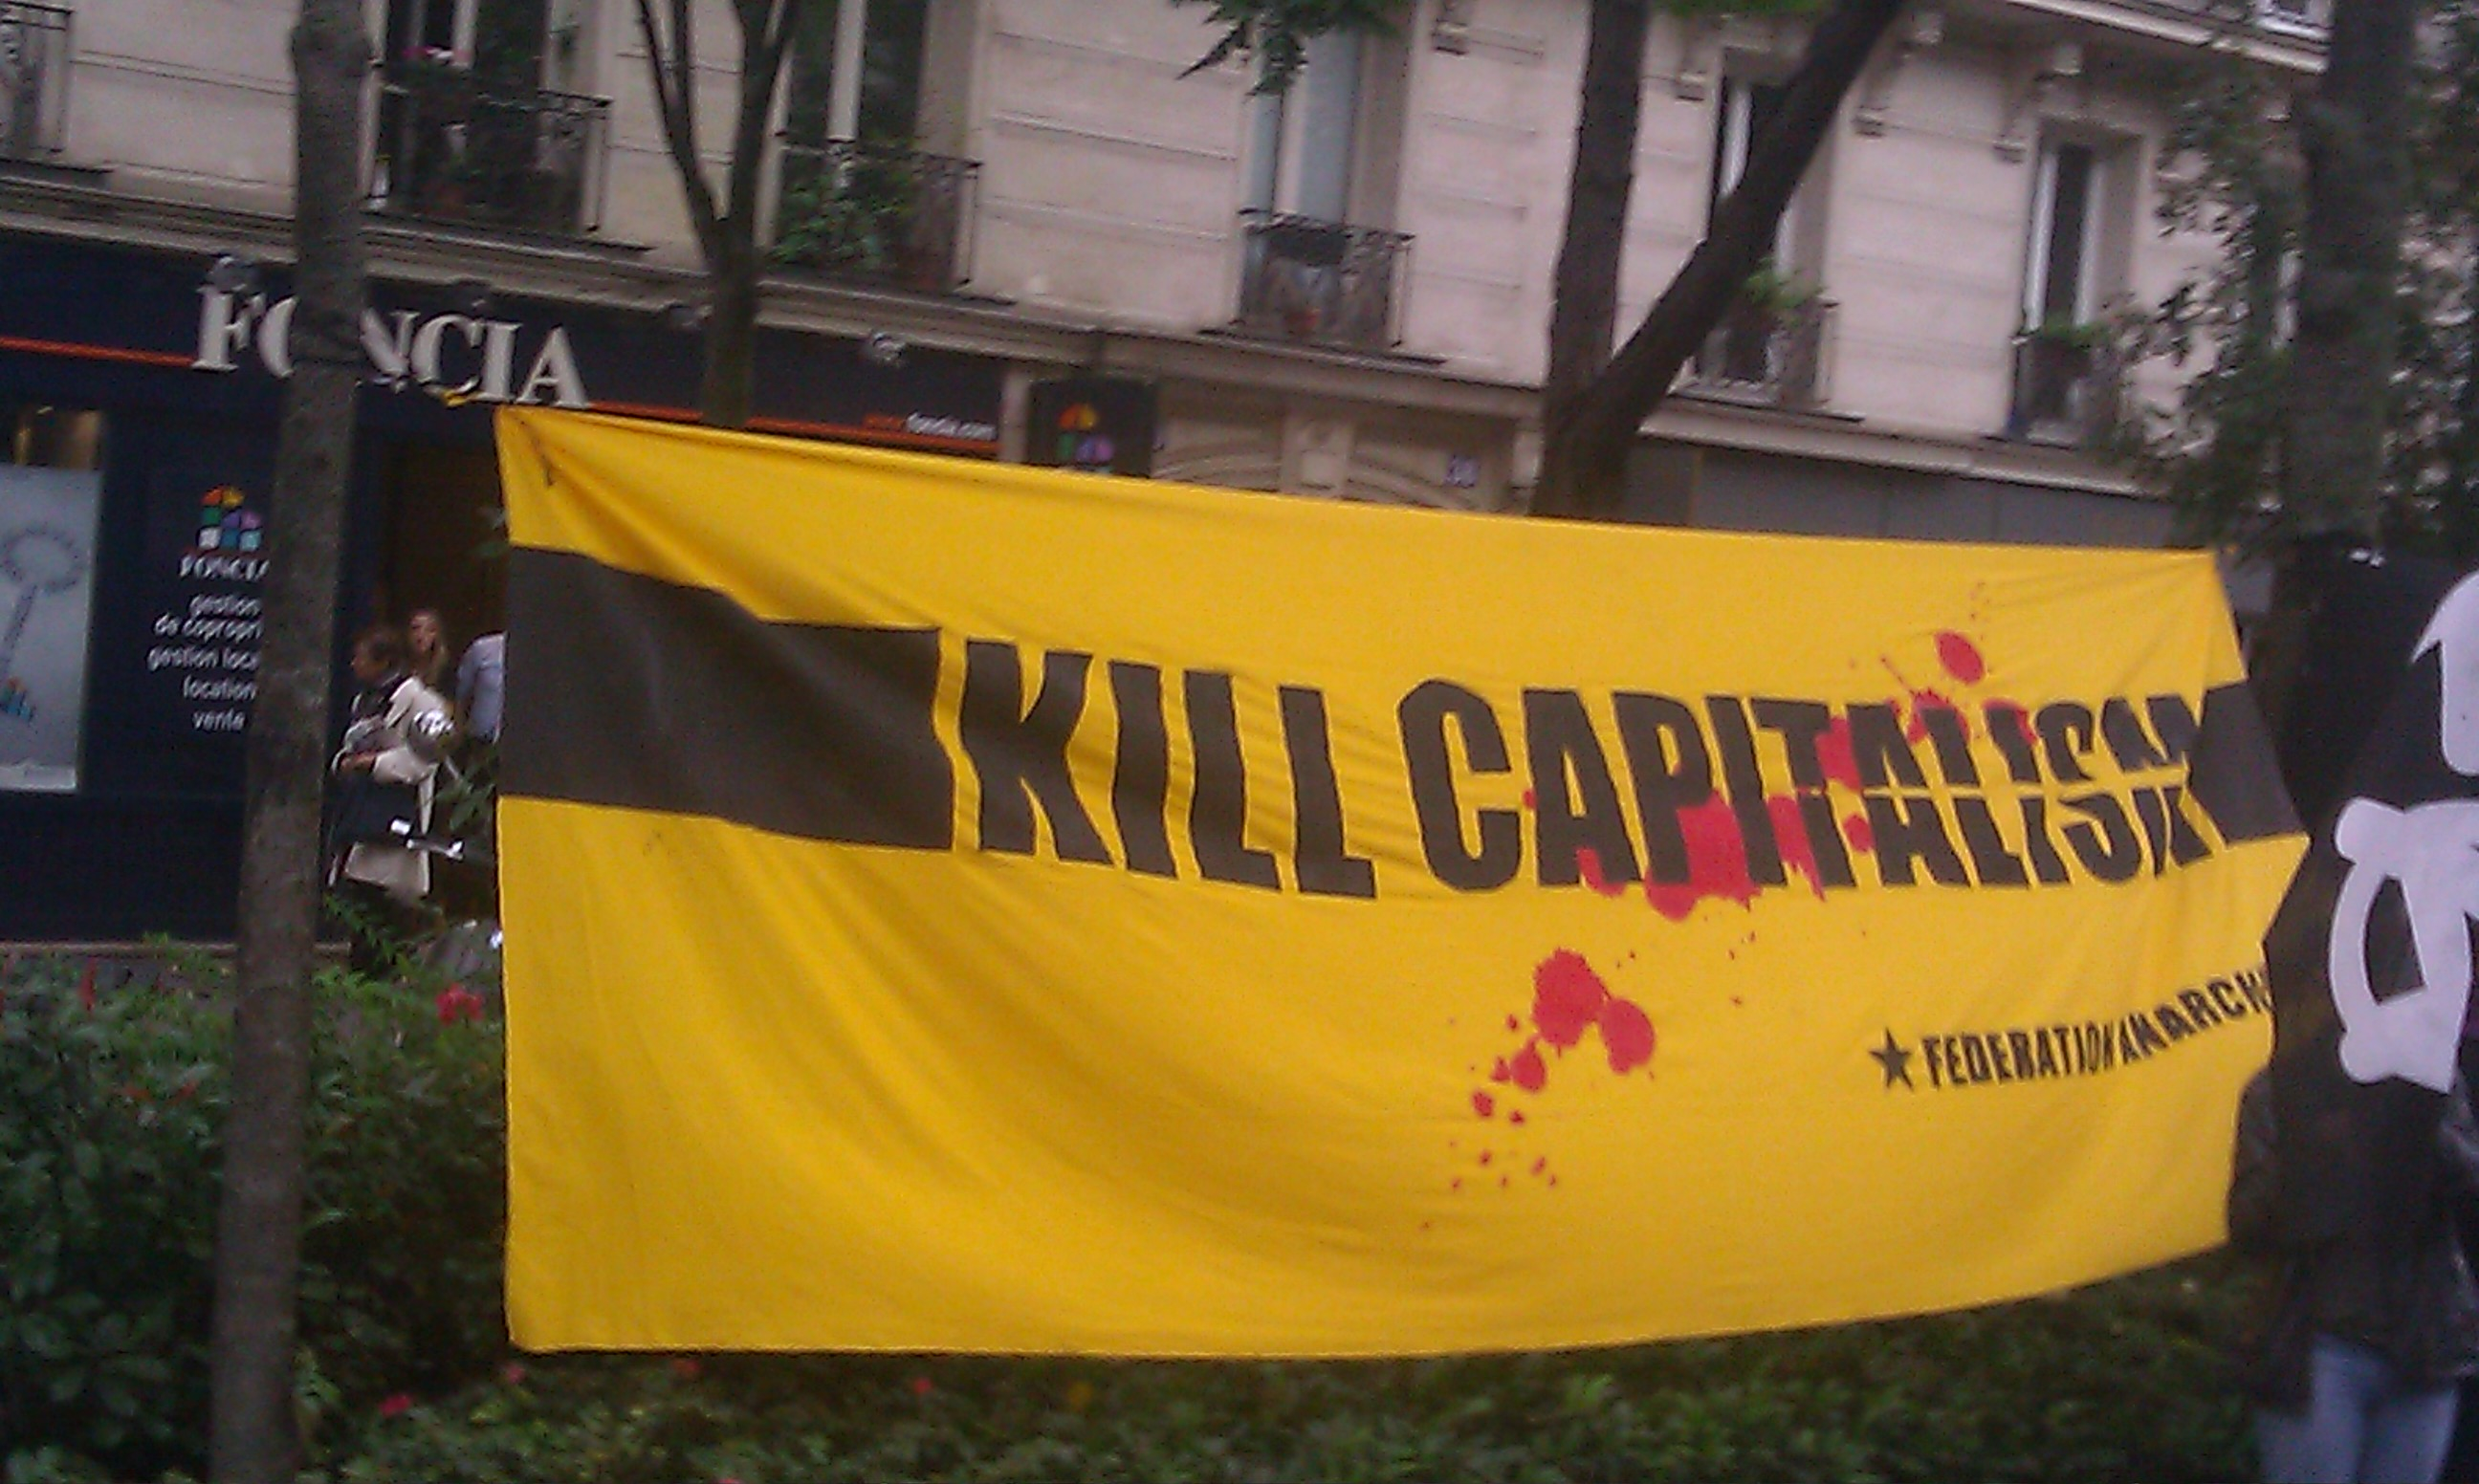 Kill capitalism, fédération anarchiste [Kill capitalism, anarchist federation]